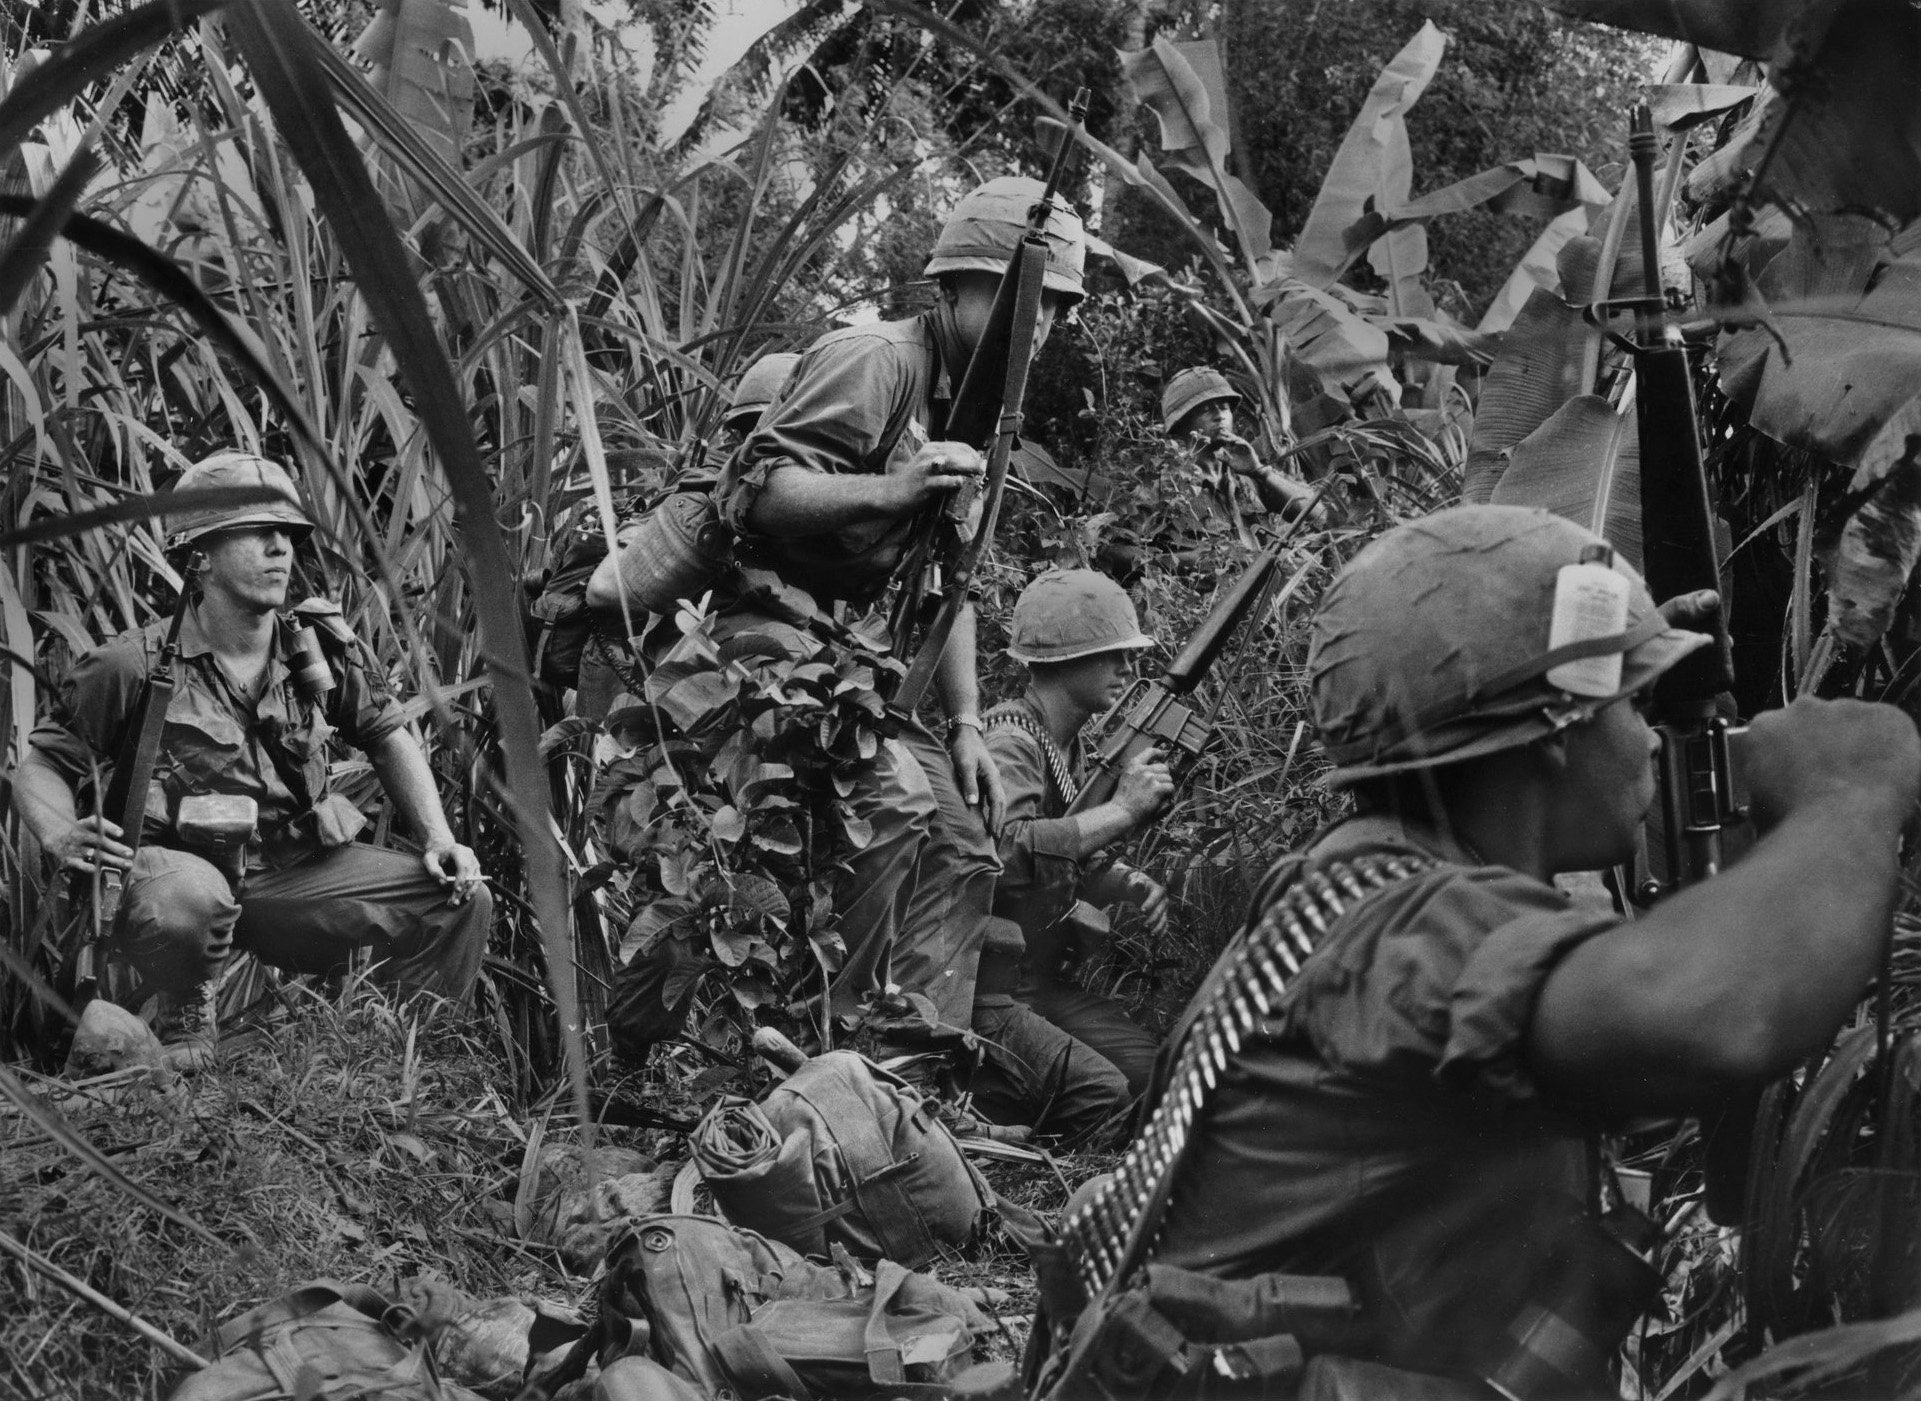 vietnam war and the media In the war, joined and north vietnam, which supported the socialist states, led by china and the ussr the american media negatively covered that conflict many believe that the americans lost not on the battlefield, but at home, because of the negative coverage of events by journalists.